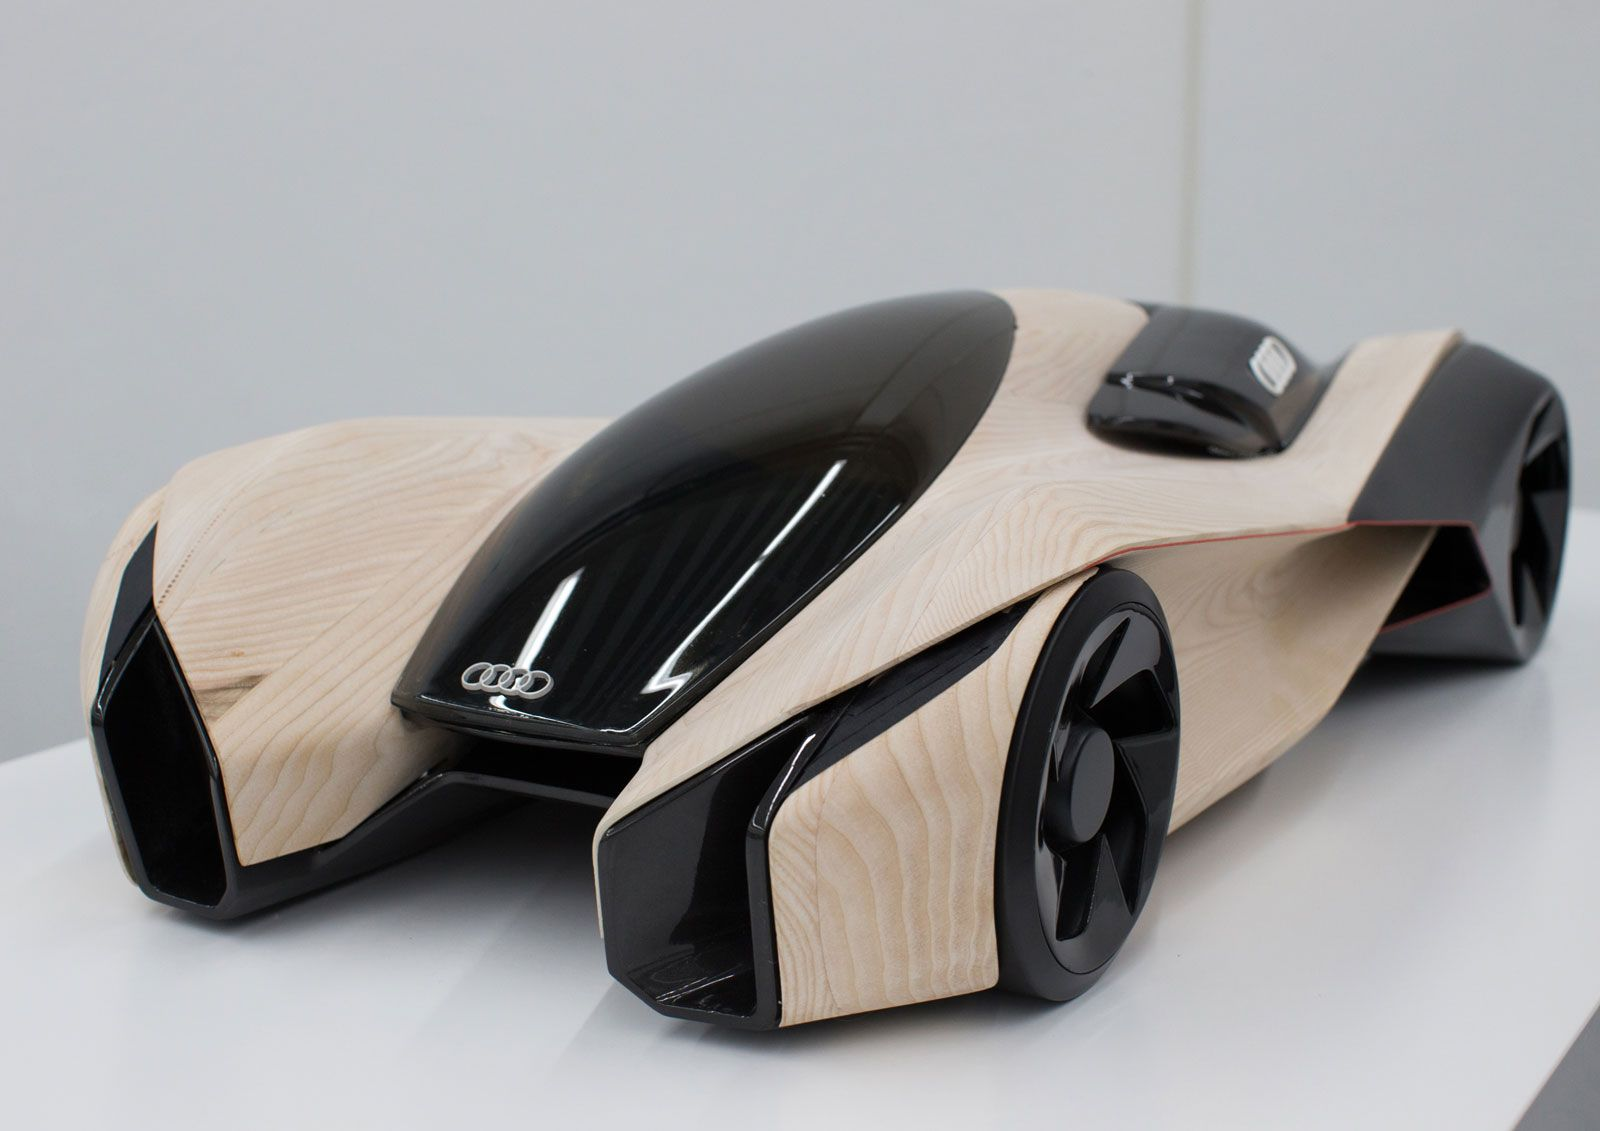 Futuristic Vehicle, Future Car, Audi Wood Aerodynamics ...